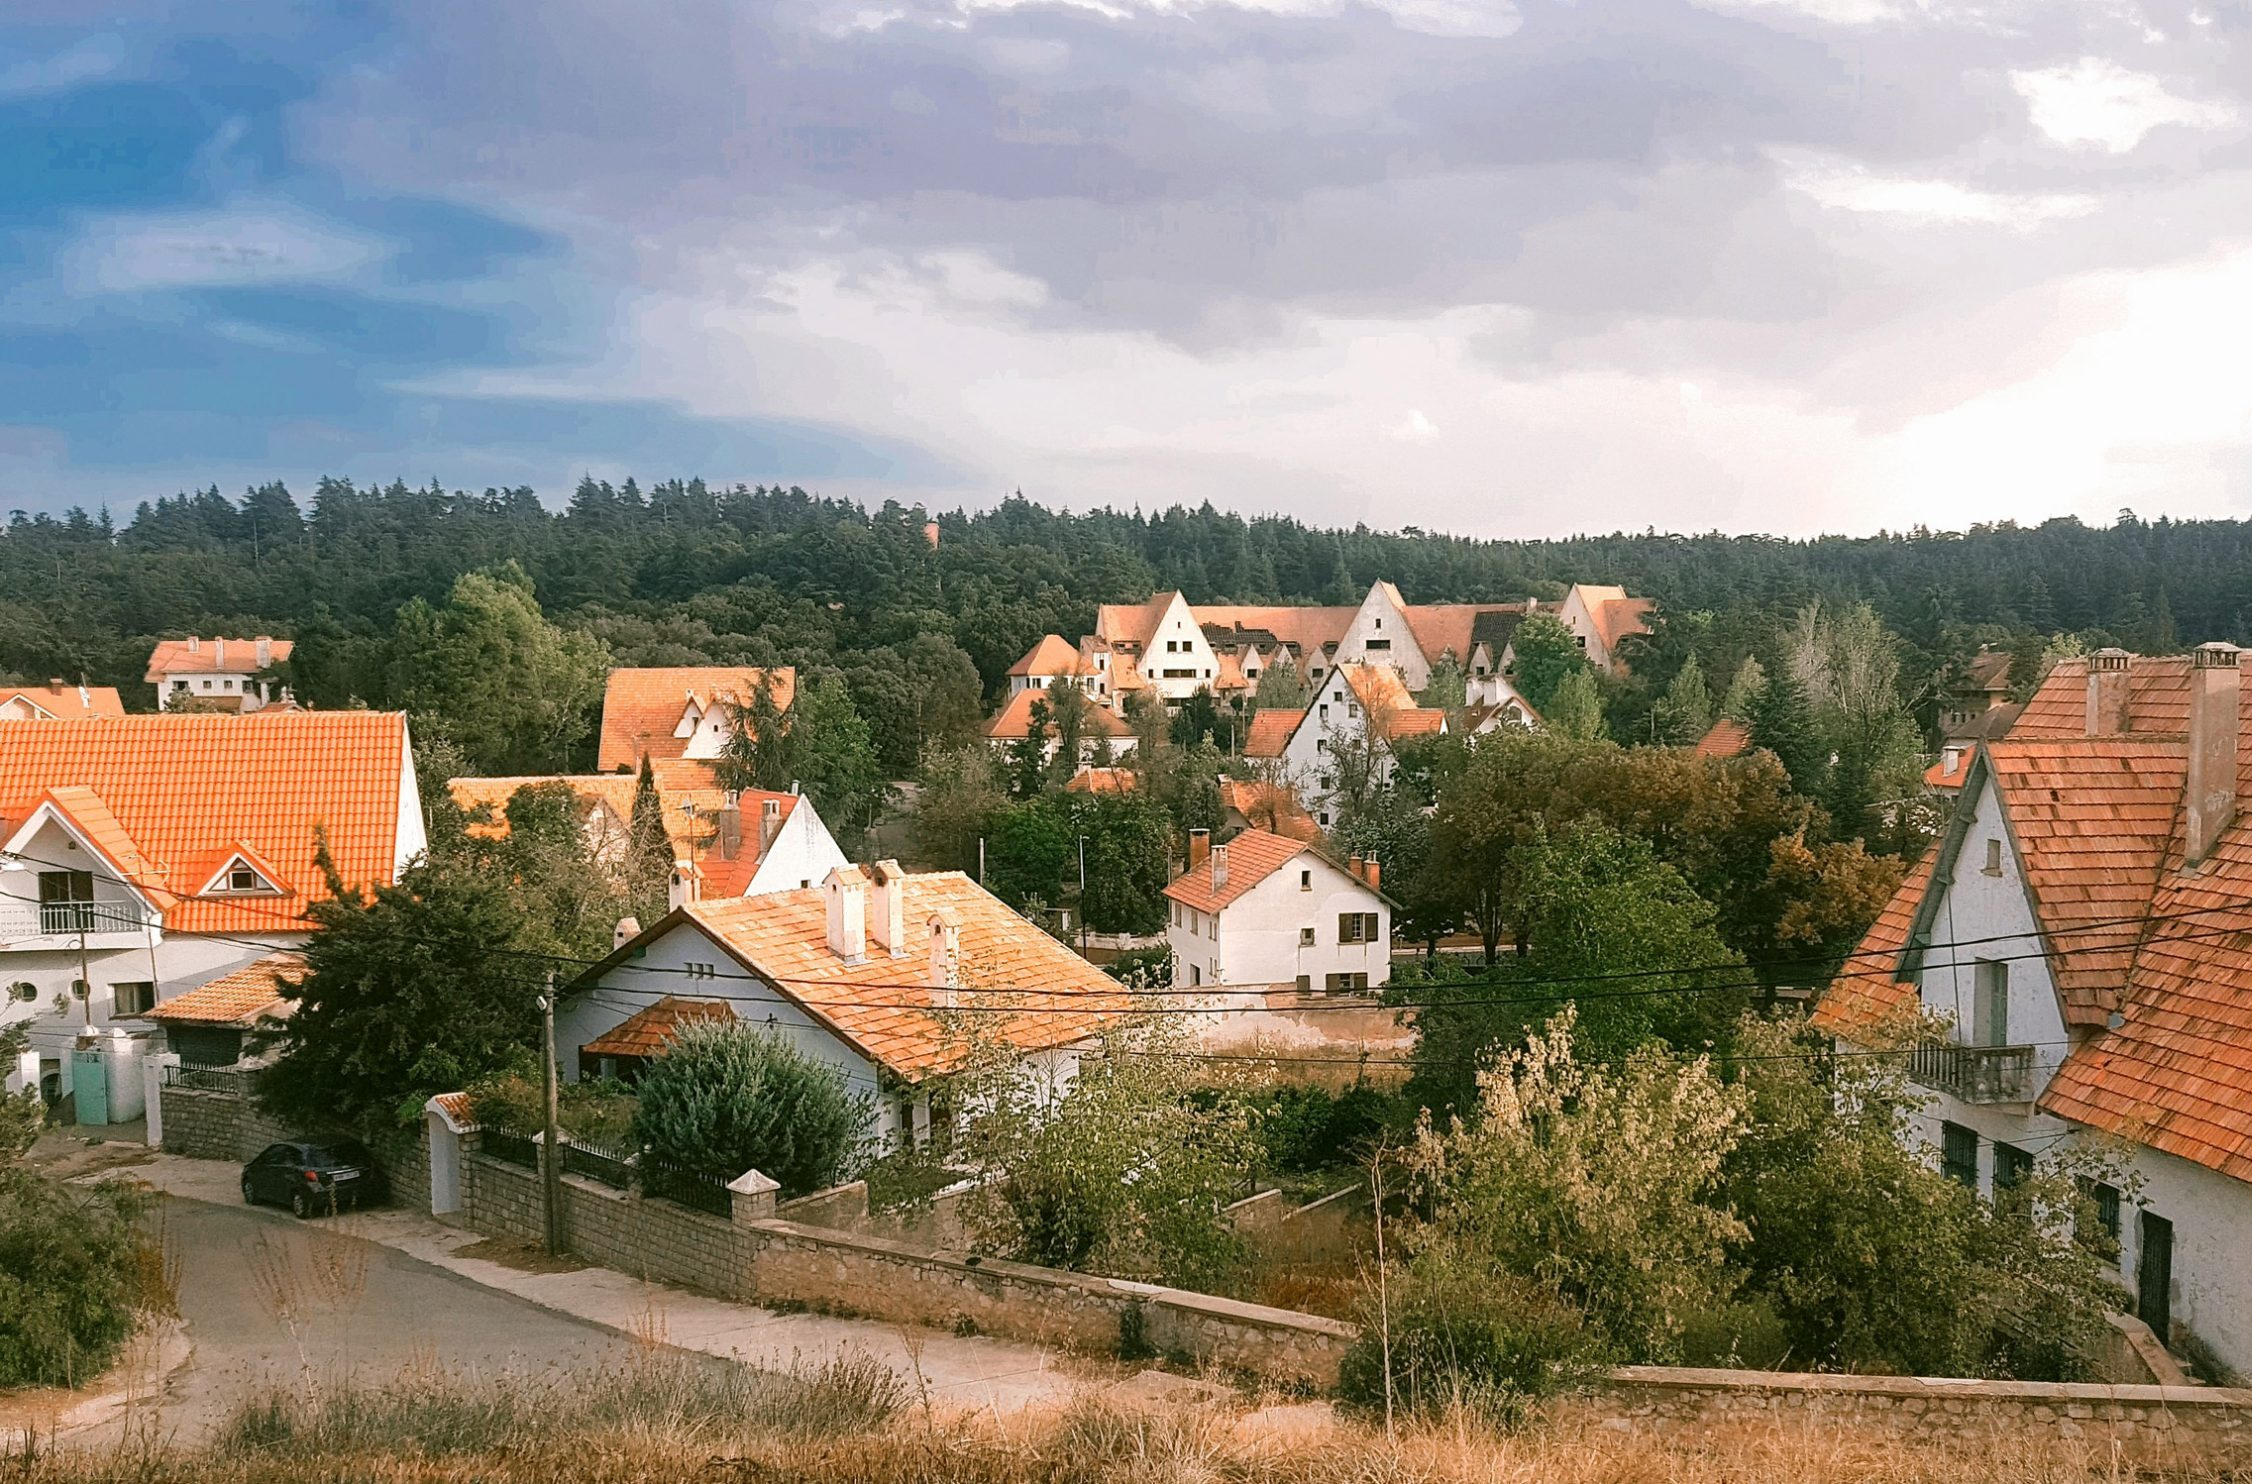 houses in Ifrane city in Morocco